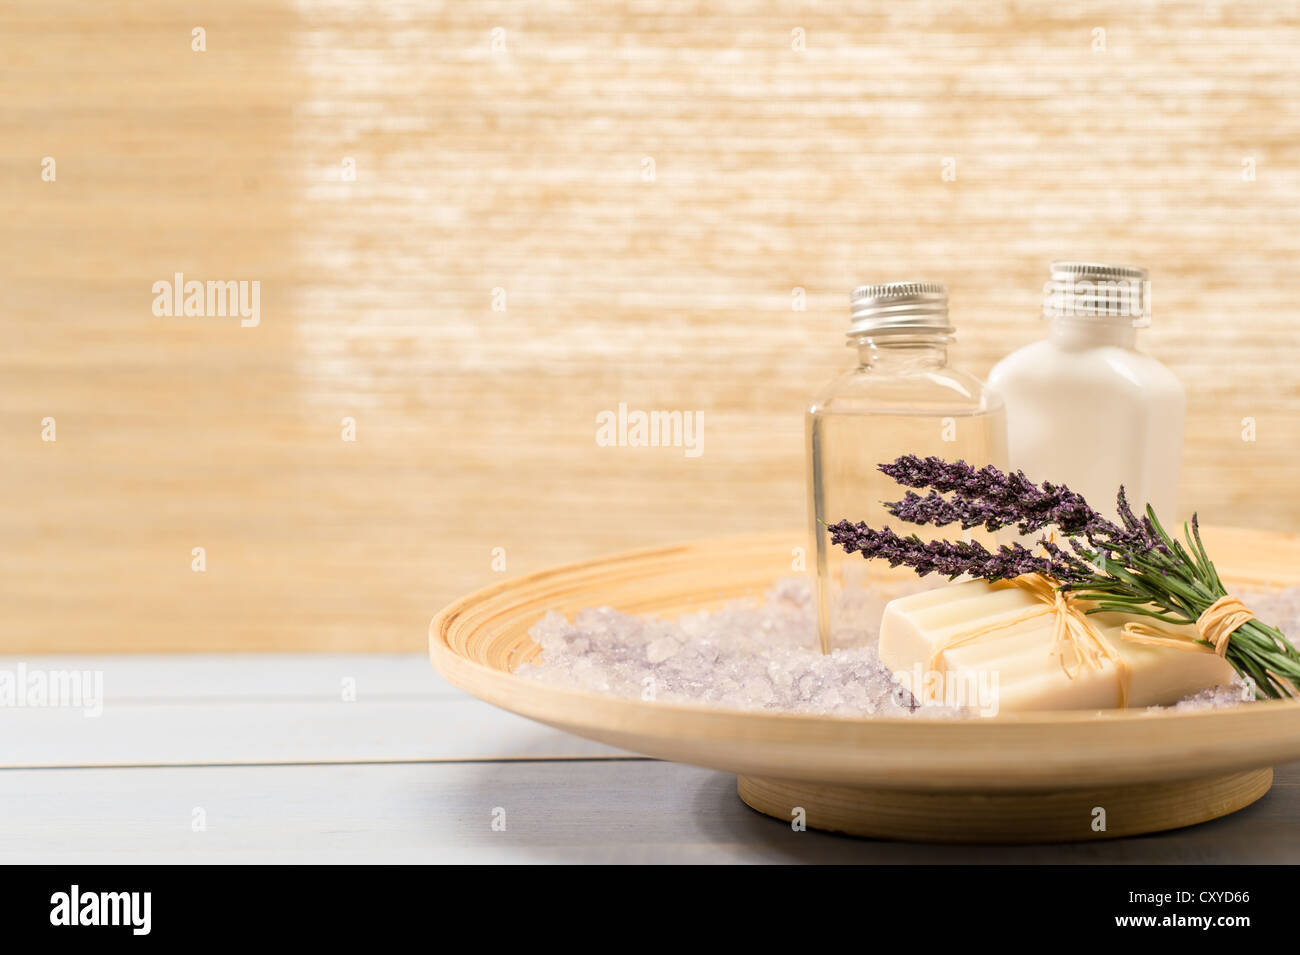 Natural spa products lavender on wooden tray - Stock Image